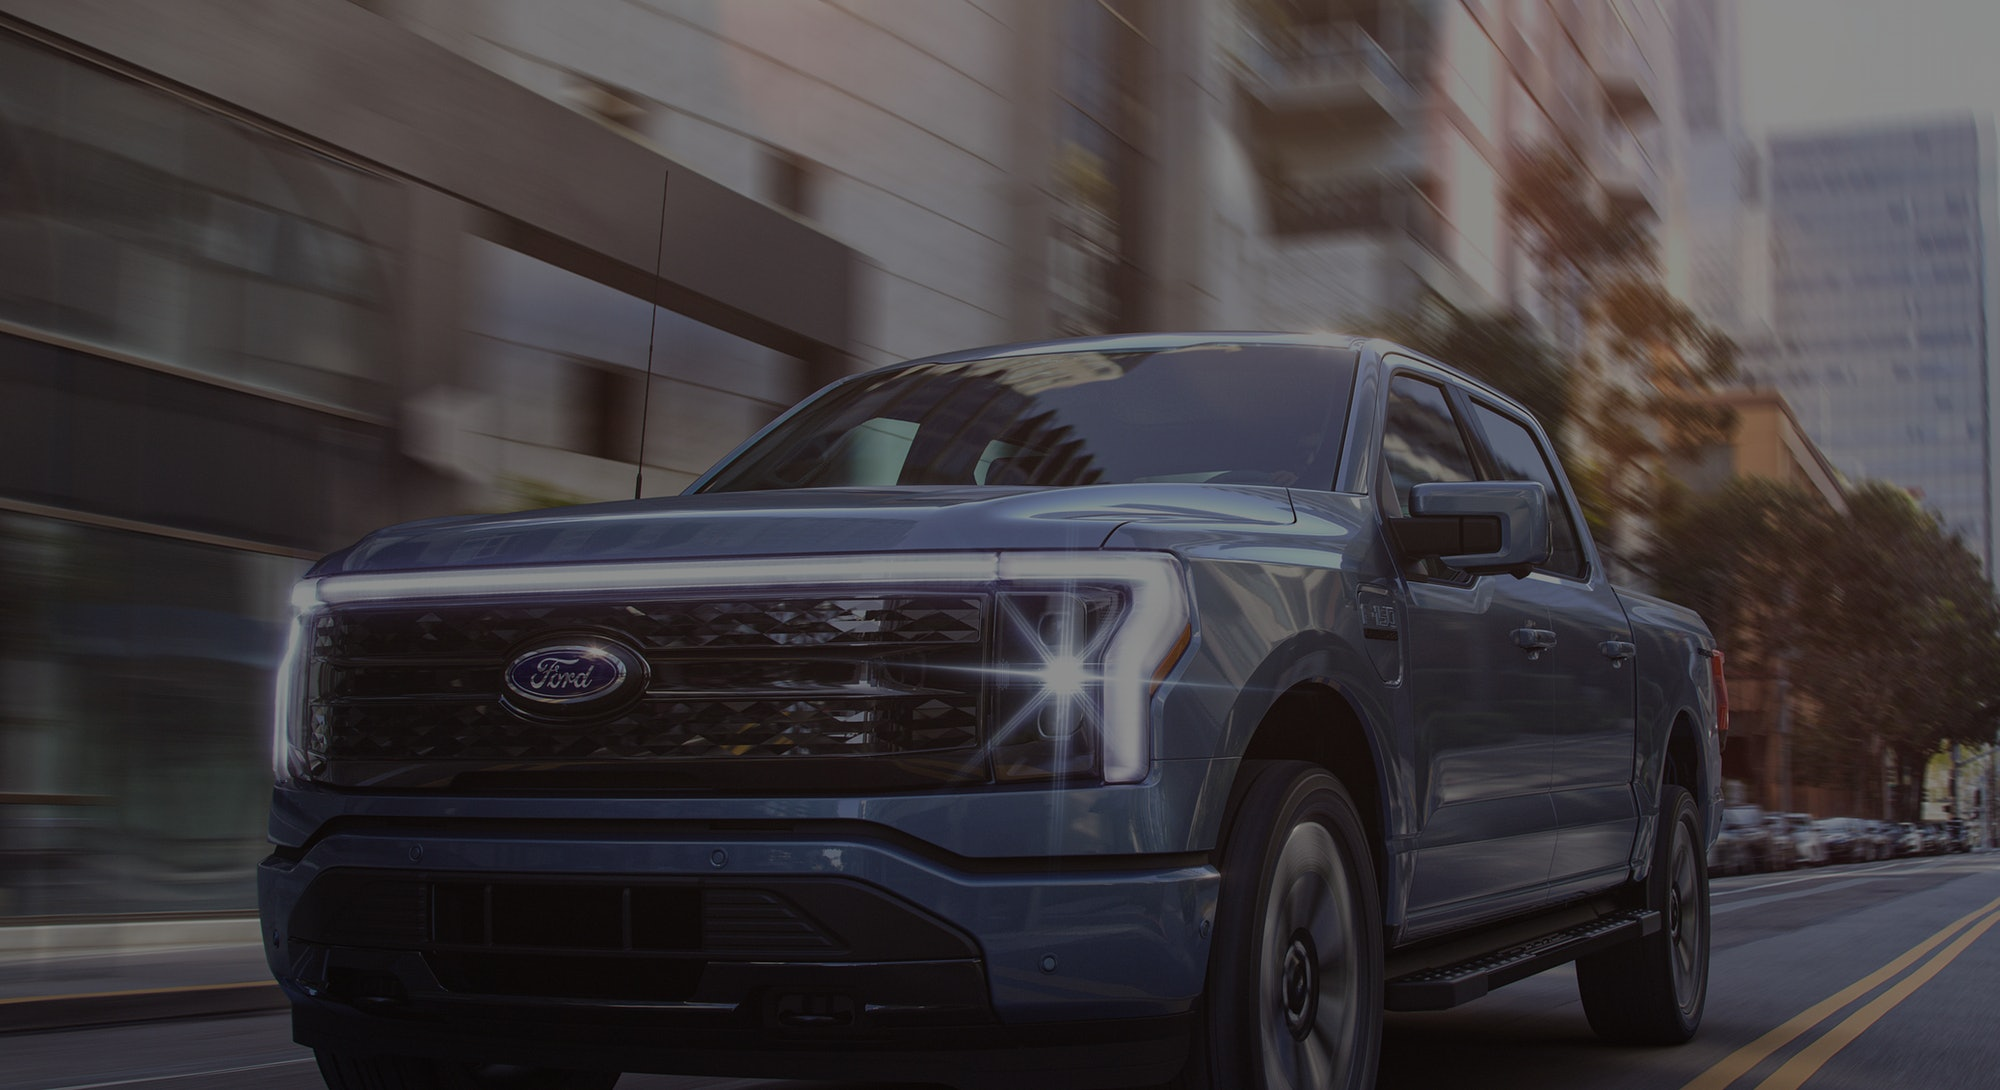 A picture of Ford's F-150 Lightning. Electric vehicles. EV. EVs. Cars. Trucks. Automotive.